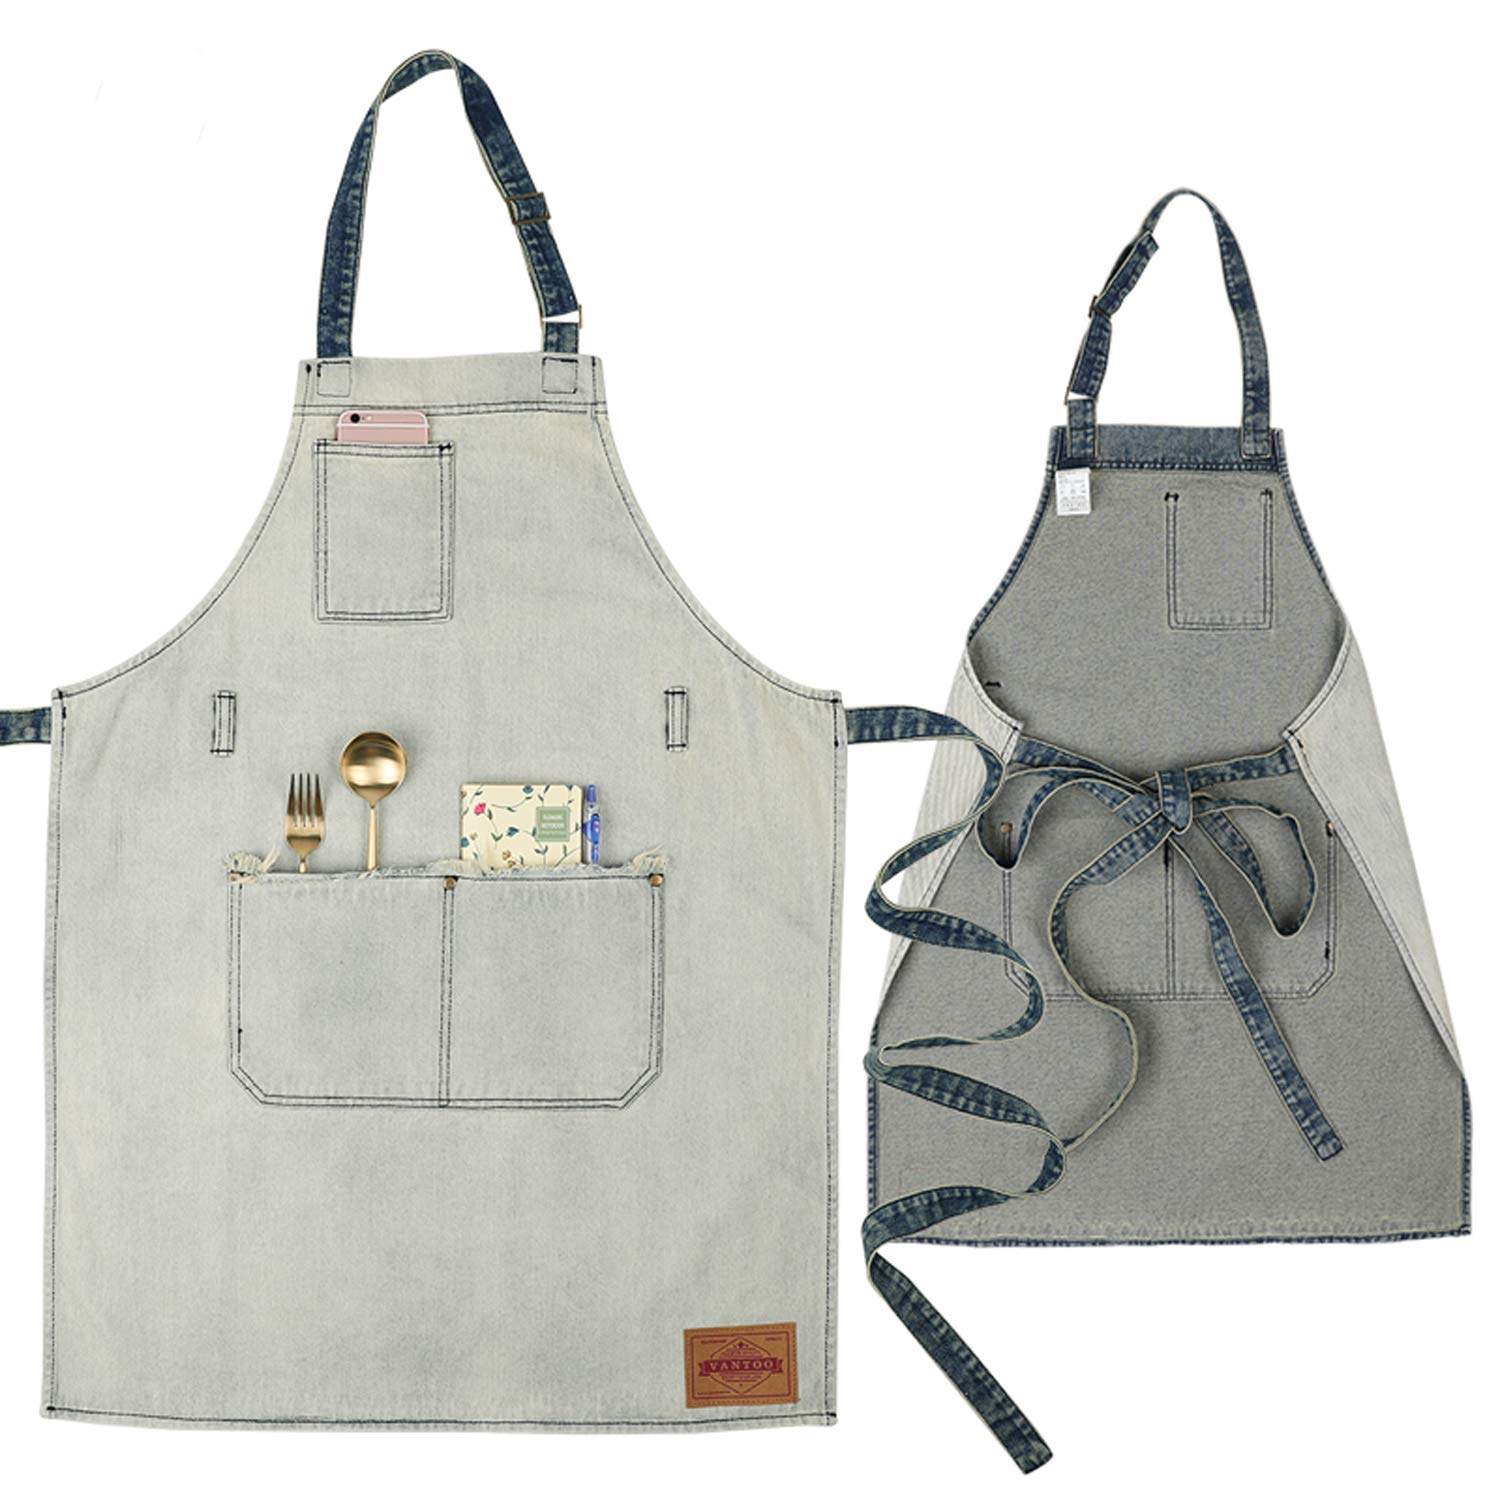 VANTOO Denim Artist Apron with 3 Pockets-Jean Painting Salon Apron-Adjustable Neck Strap-Extra Long Ties for Friends Families,White